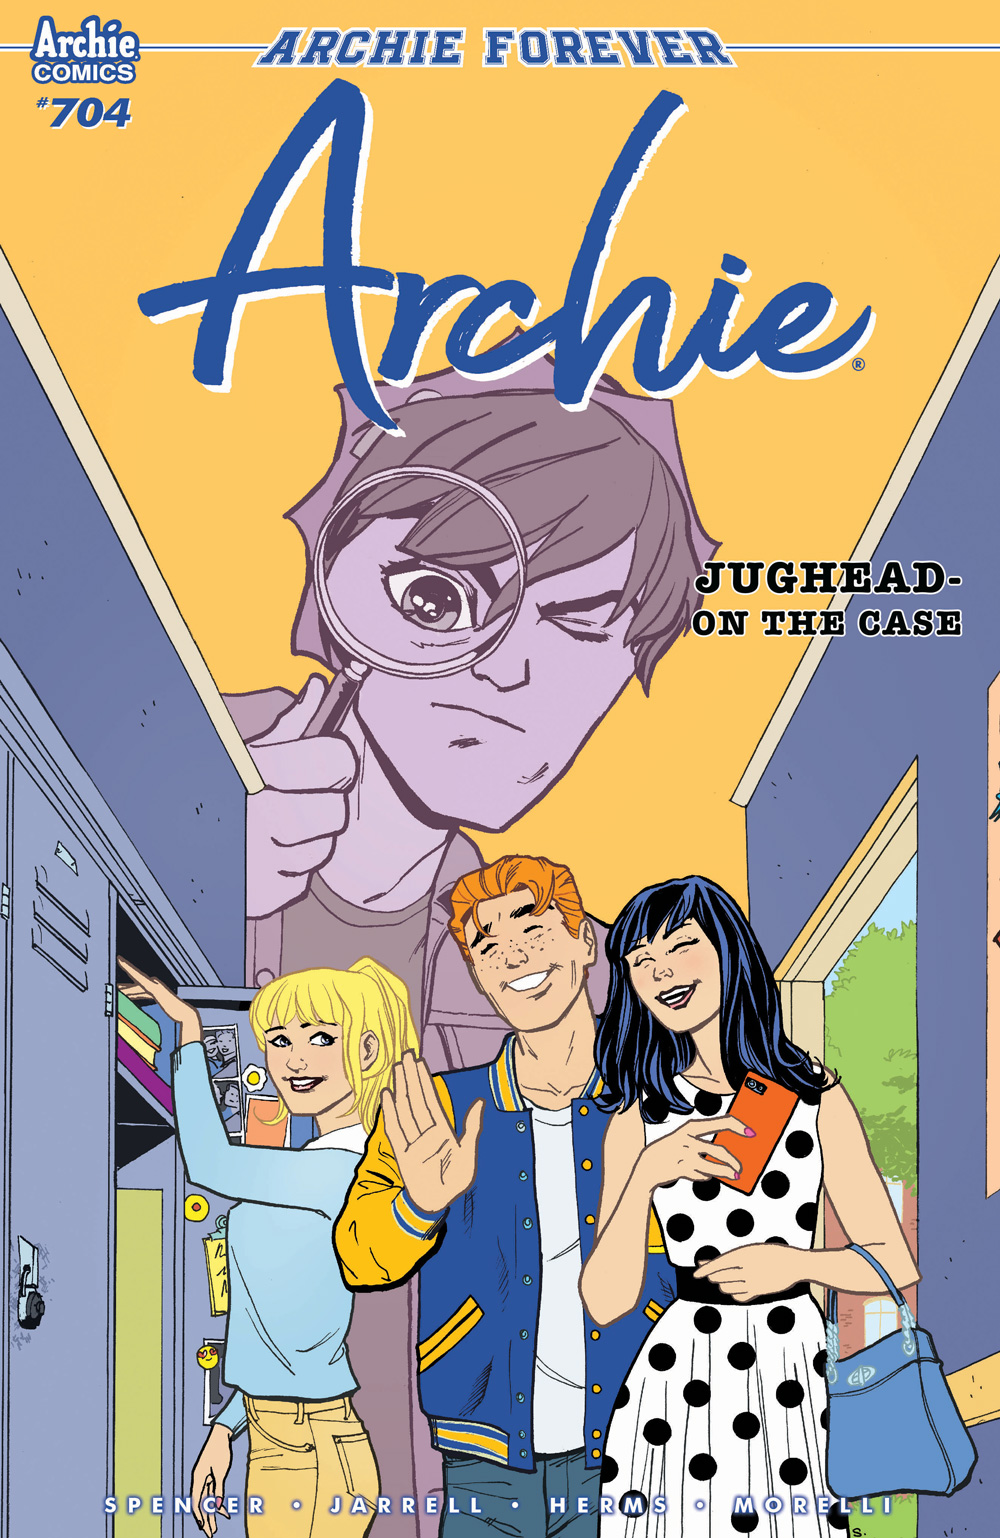 Archie_704_CoverB_Jarrell.jpg